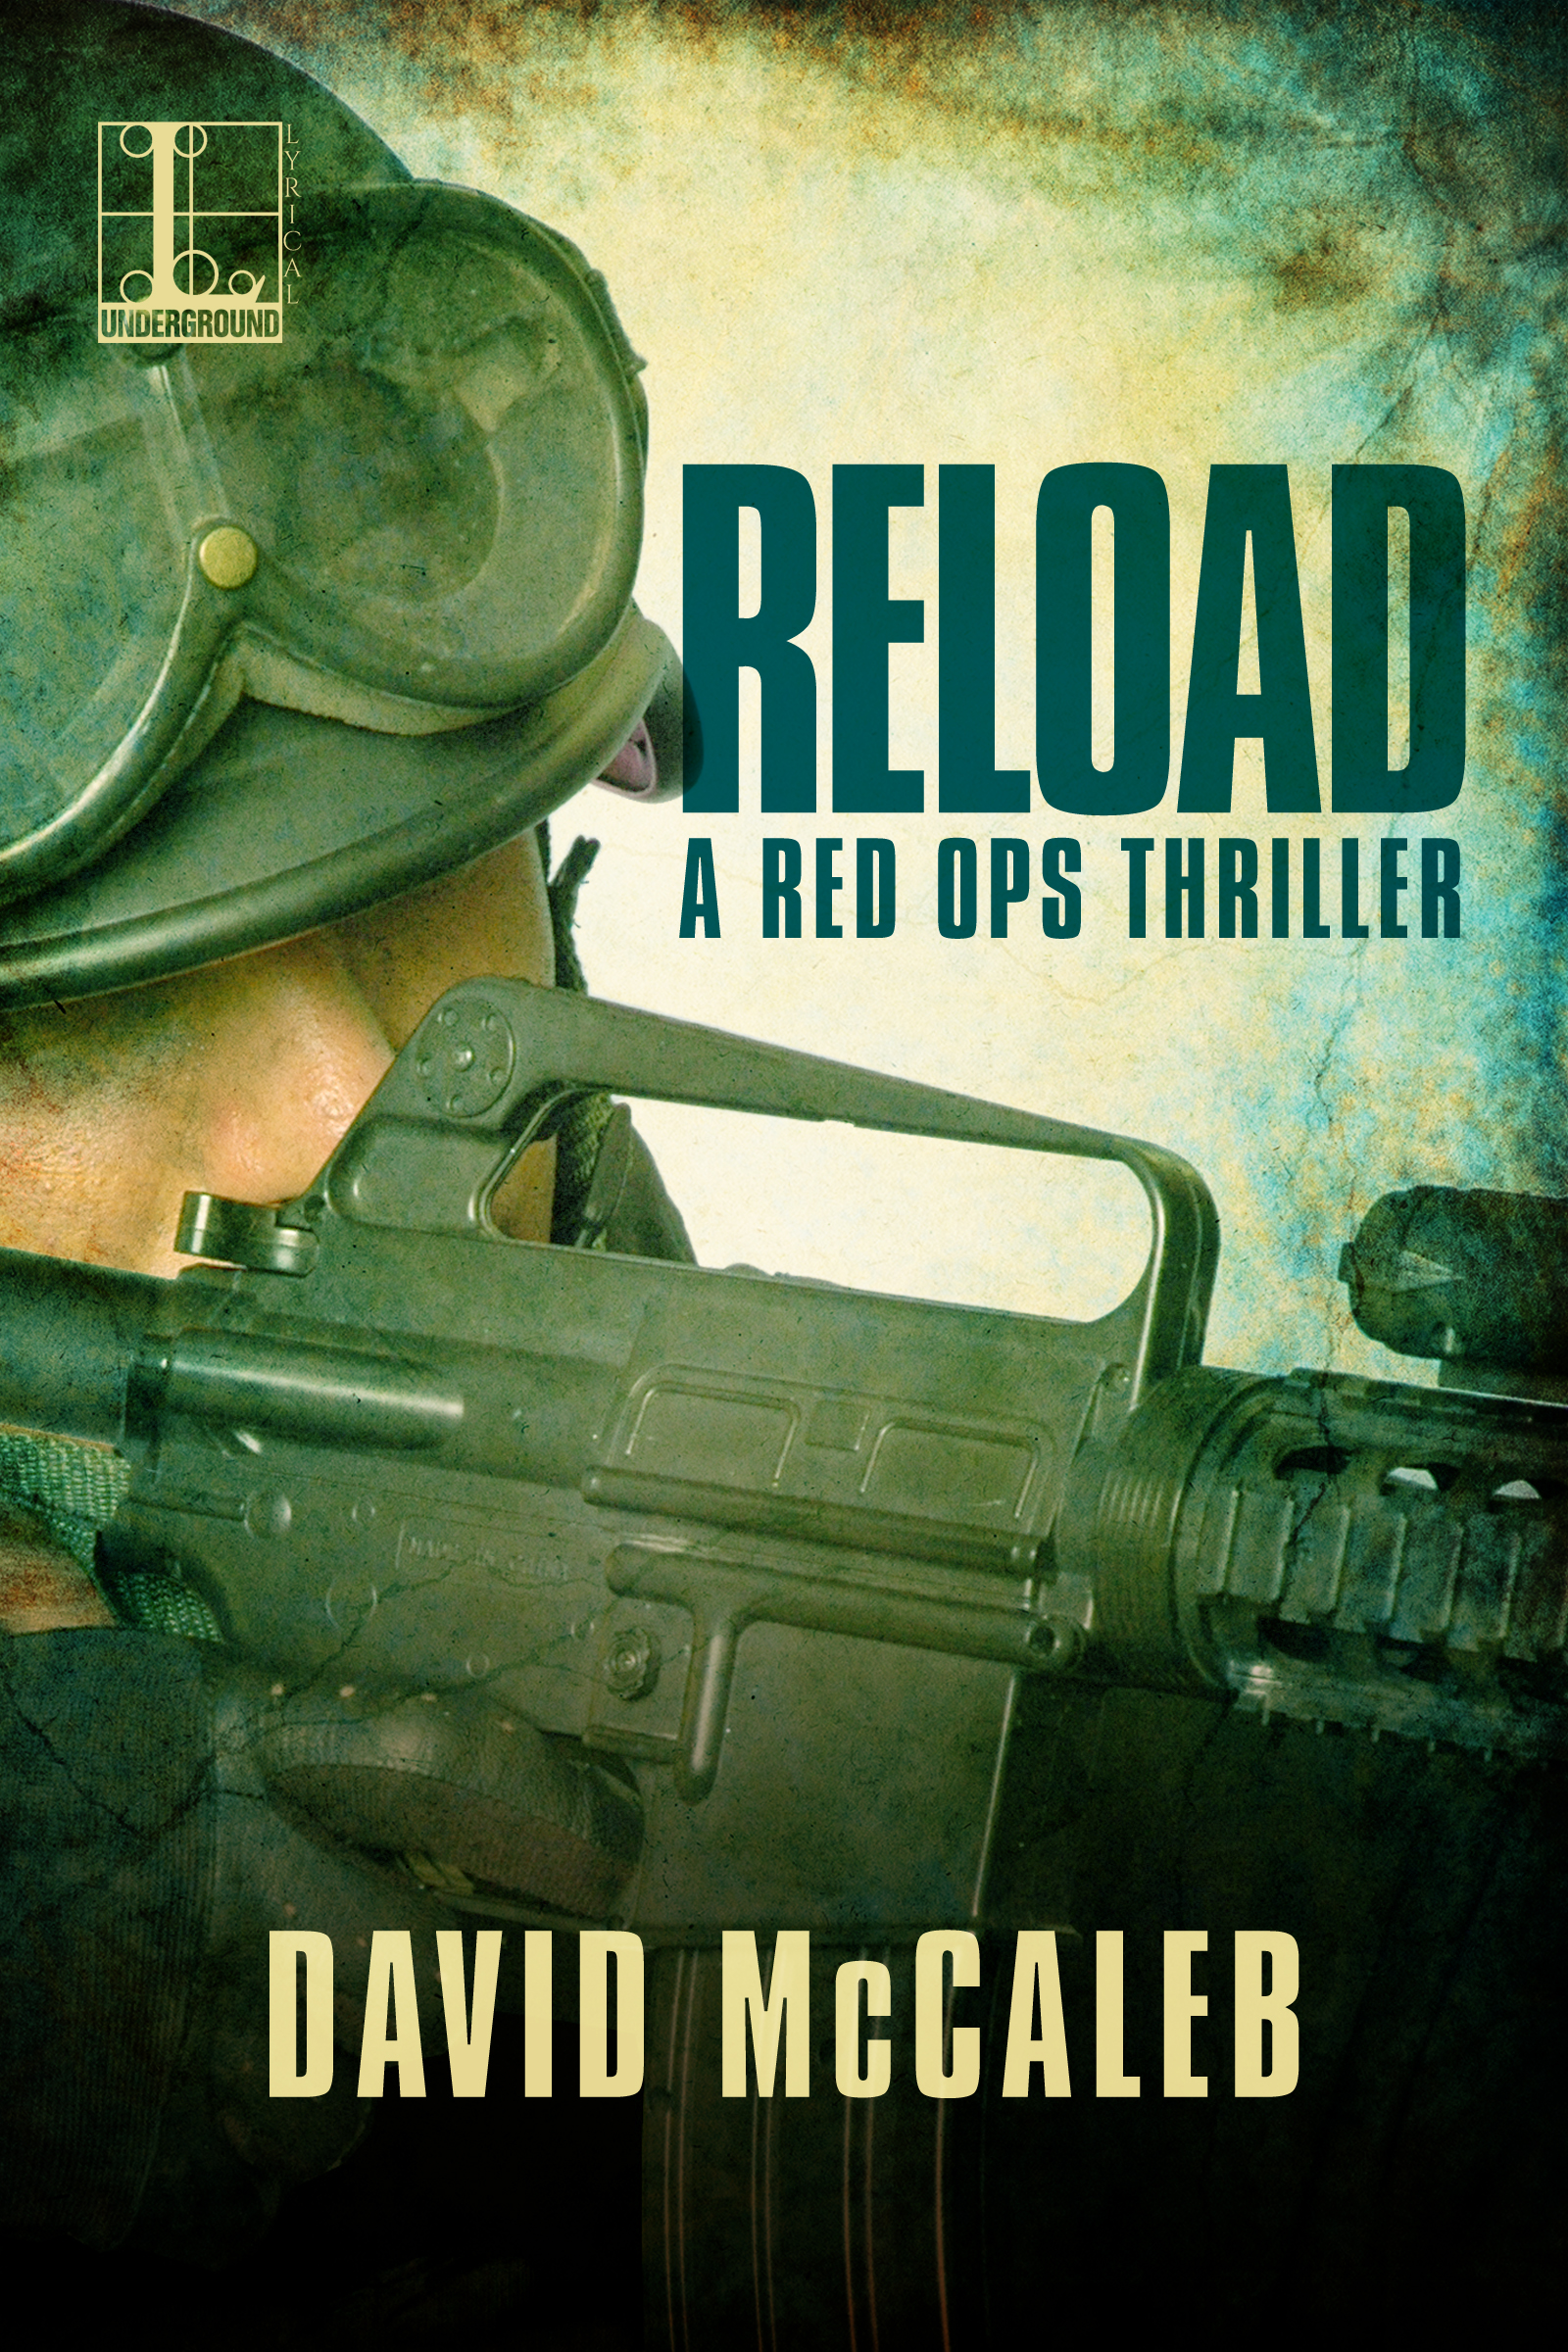 Cover of novel RELOAD by David McCaleb